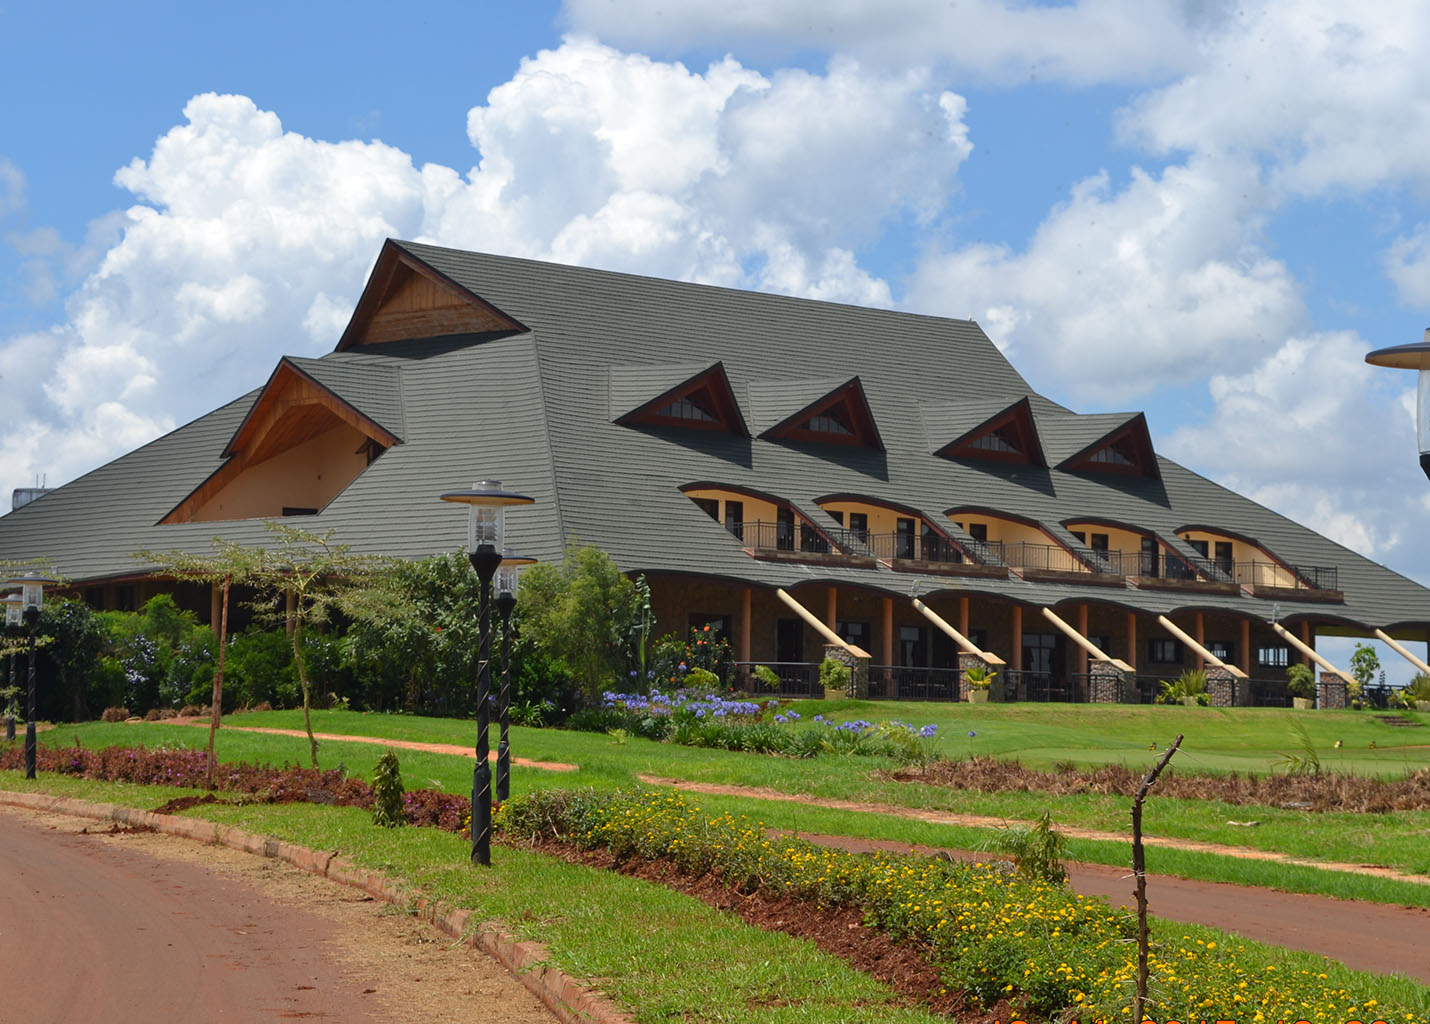 Thika Greens Golf Clubhouse designed by E.D.G. & Atelier Architects